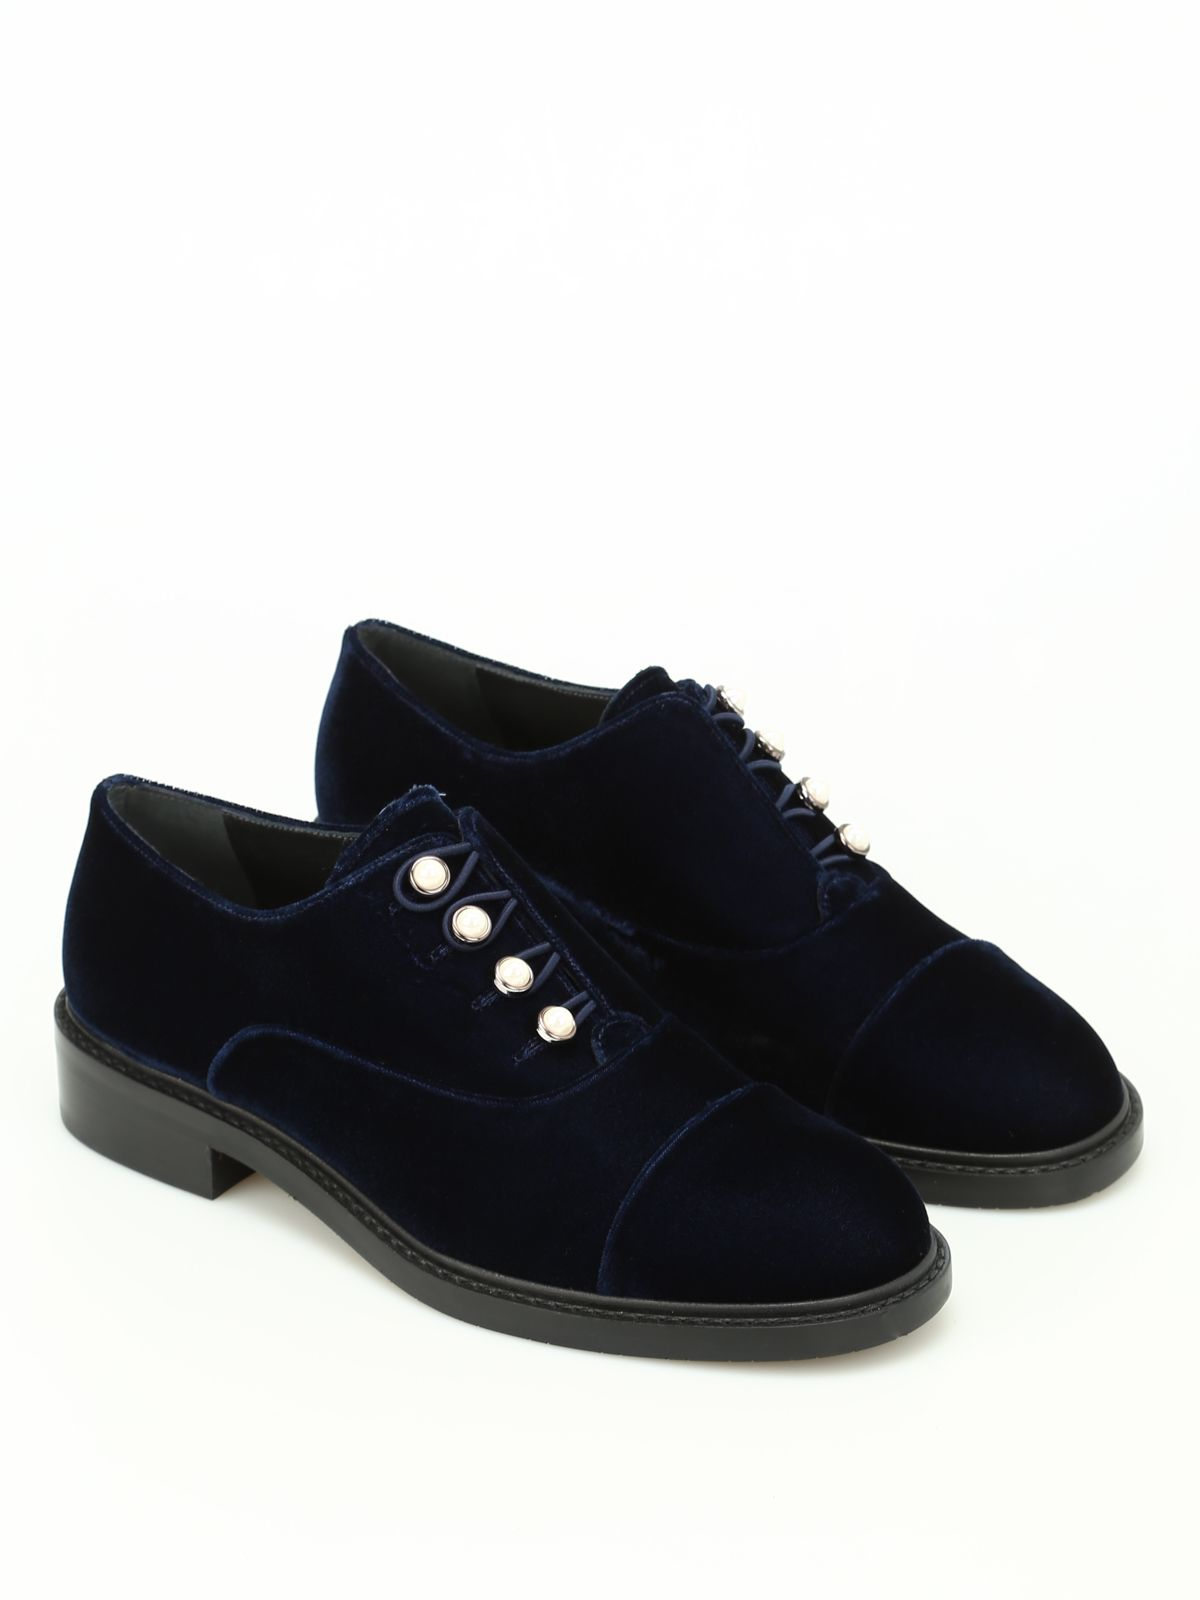 Mrspats Velvet Oxford With Pearls ...